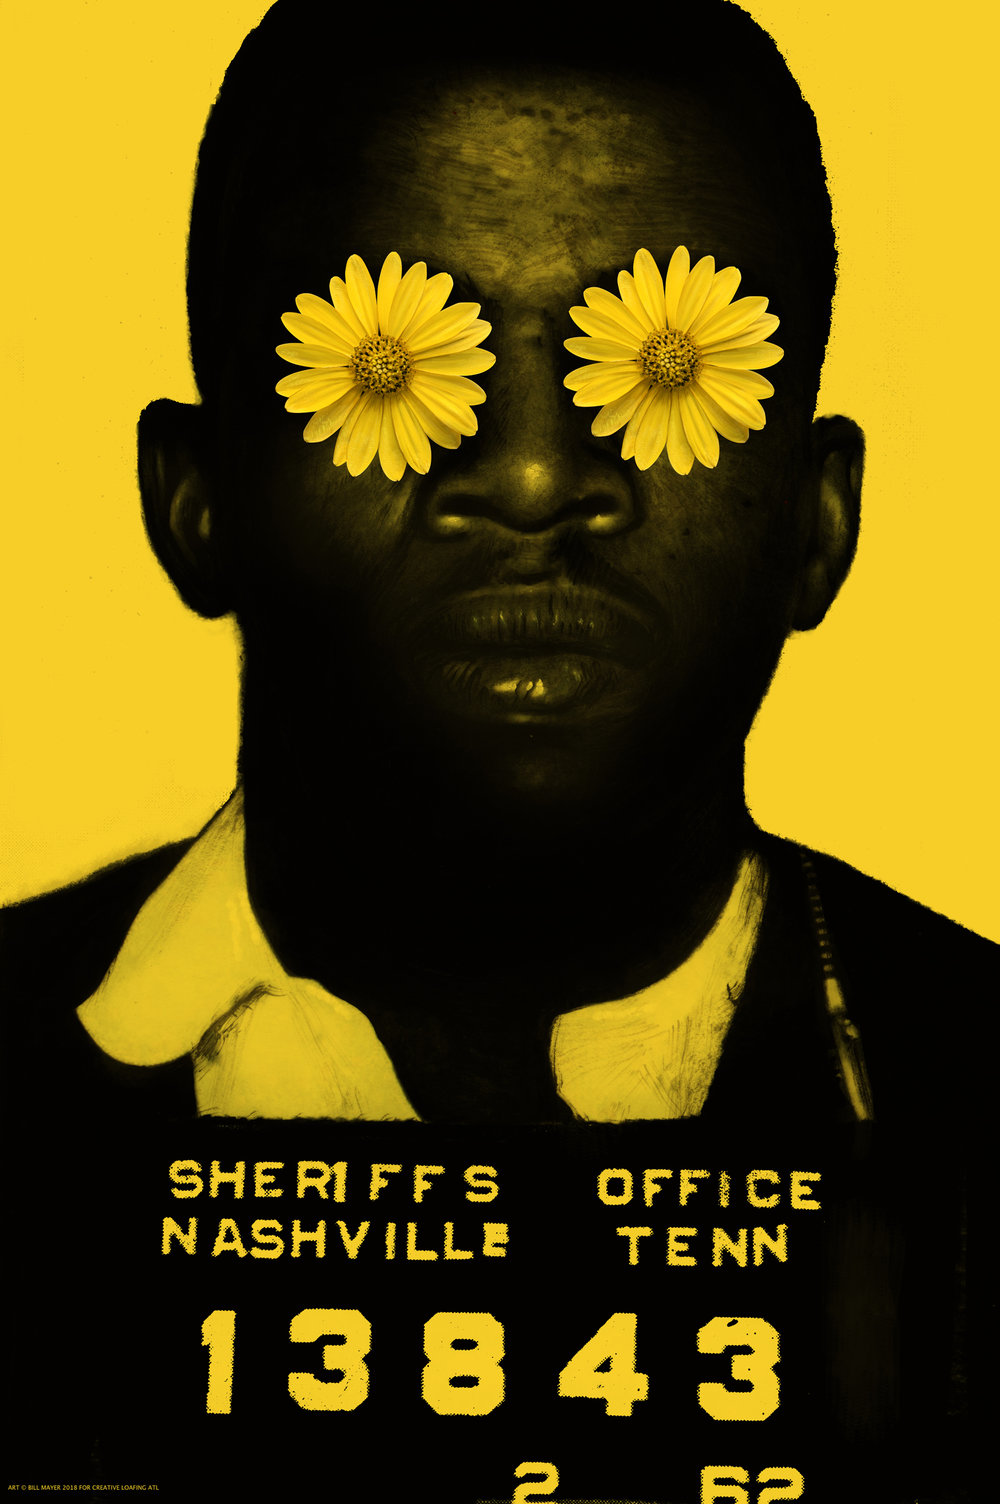 "- My initial idea for the JL poster was to have flowers on his eyes like a nod back to those peace posters from the 60's. I thought it was an ironic contrast with the stark police photo but Blake got some push back from CL saying ""I'm getting everything from white appropriation with flower power to Day of the Dead. Geesh. "" Lee had already expressed some feeling that it was not the right approach so I quickly came up with a simpler solution making the reflections in the eyes into doves. Forest thought it made his eyes sparkle. A much better poster. In my initial thumbnails I had tried a cople of variations with hand written type that seemed problematic with my spelling and the time for editing nonexistant.The three posters were designed to have the letter included on the front in a column. The yellow poster to have the Letter on the back. I thought the yellow poster was by far the strongest direction."